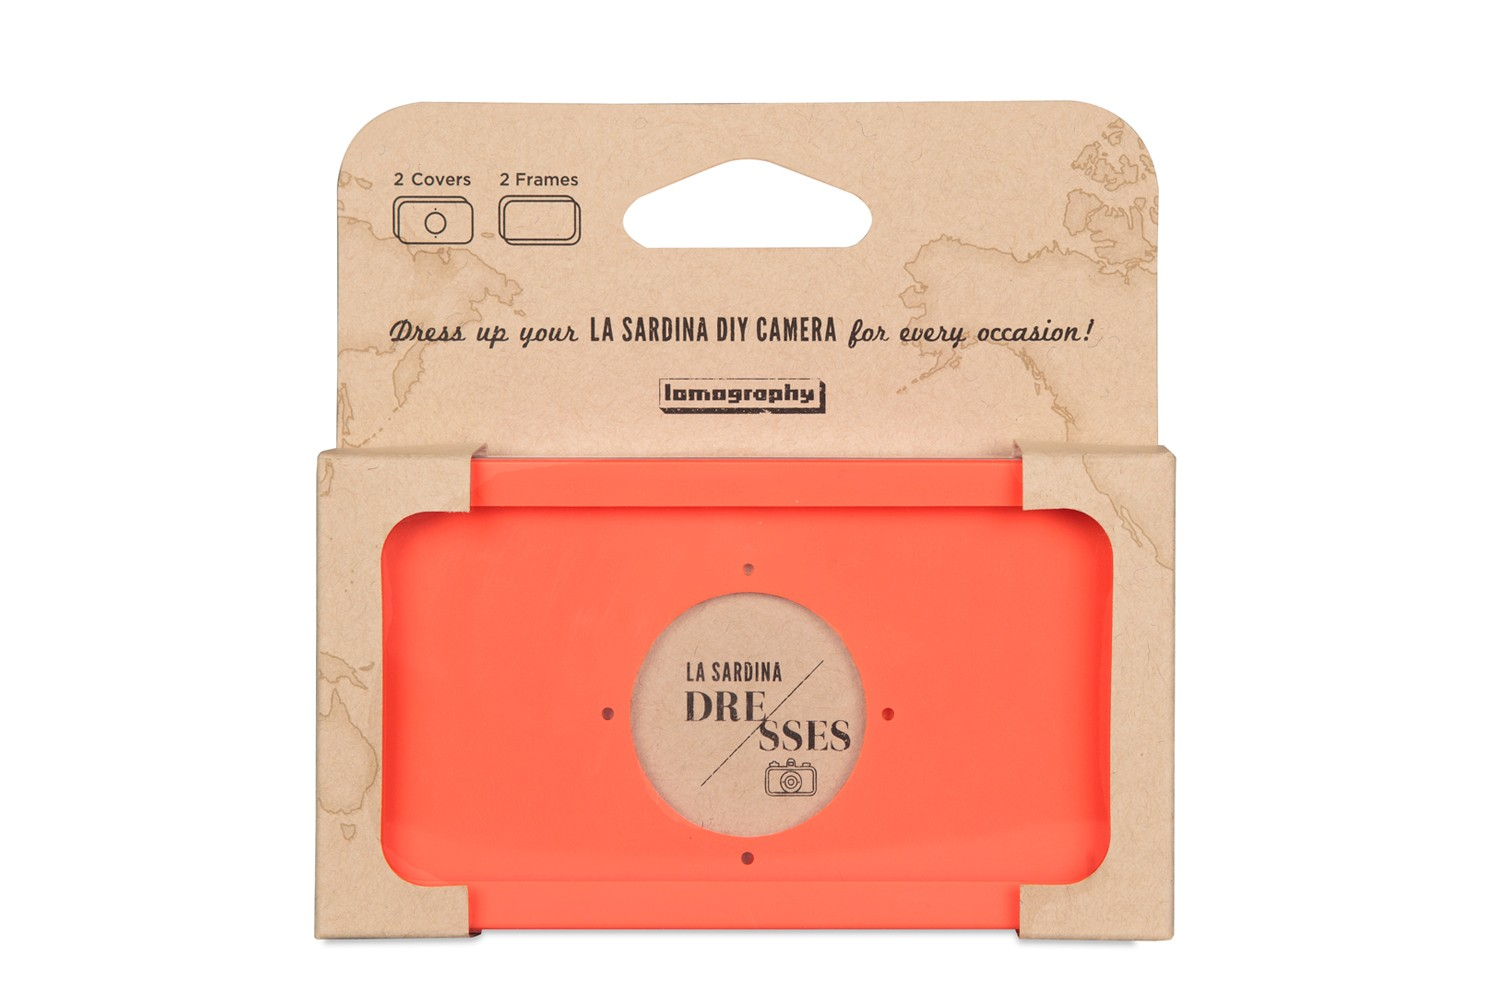 La Sardina Dress Orange Soda